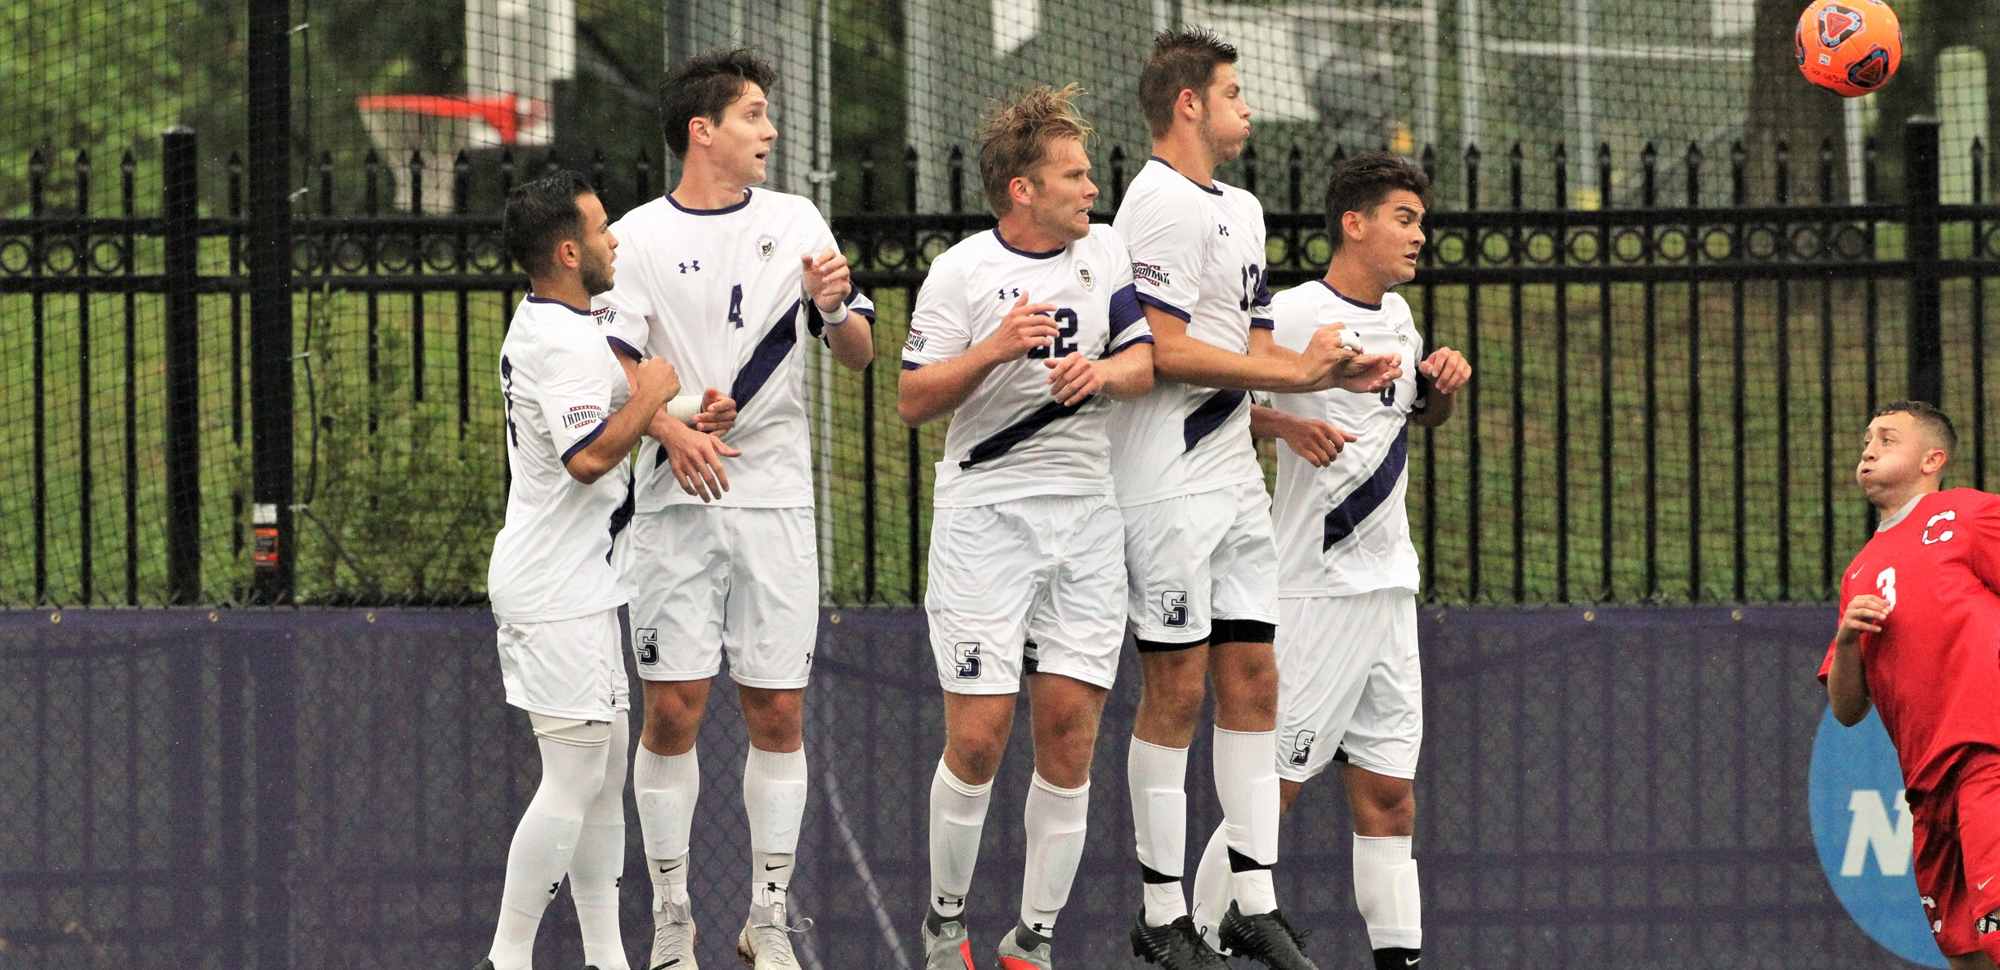 The men's soccer team suffered its first setback of the season on Saturday to Cortland.